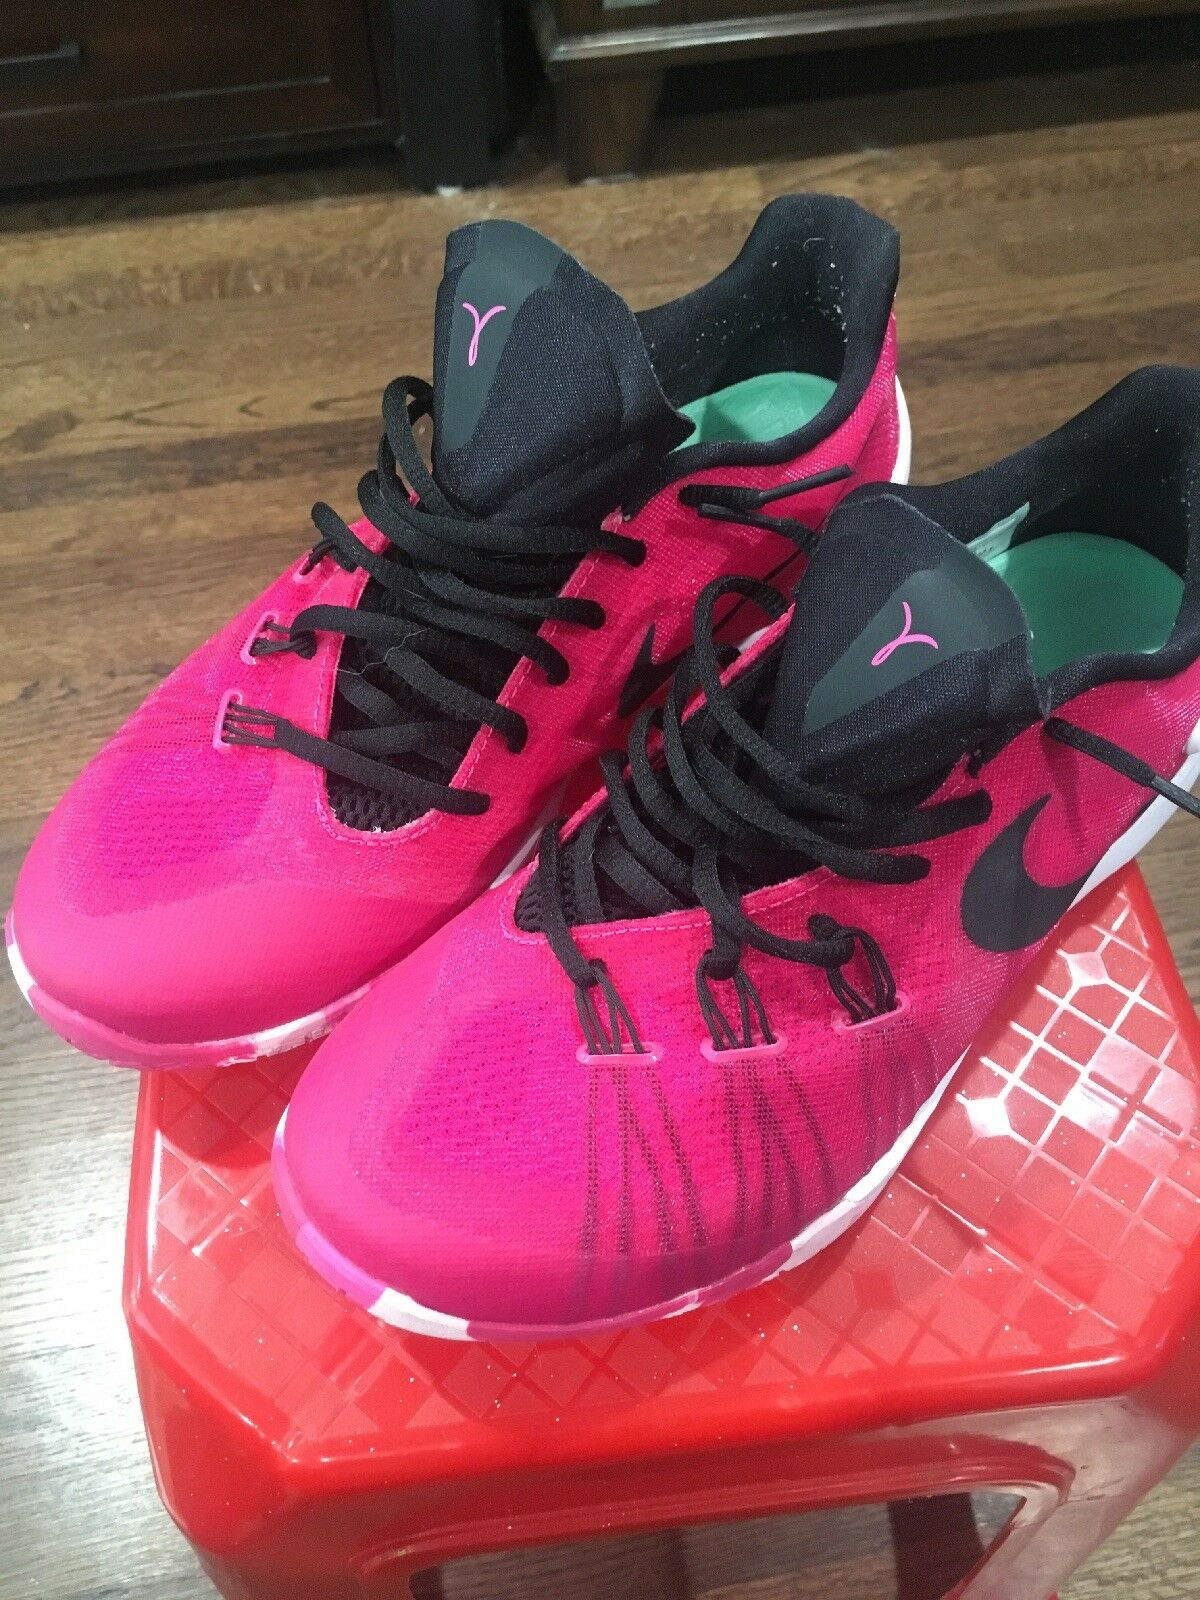 Nike Think Think Think Pink Hyperchase Breast Cancer Awareness Insole Swap With Kobe Lunar c76521